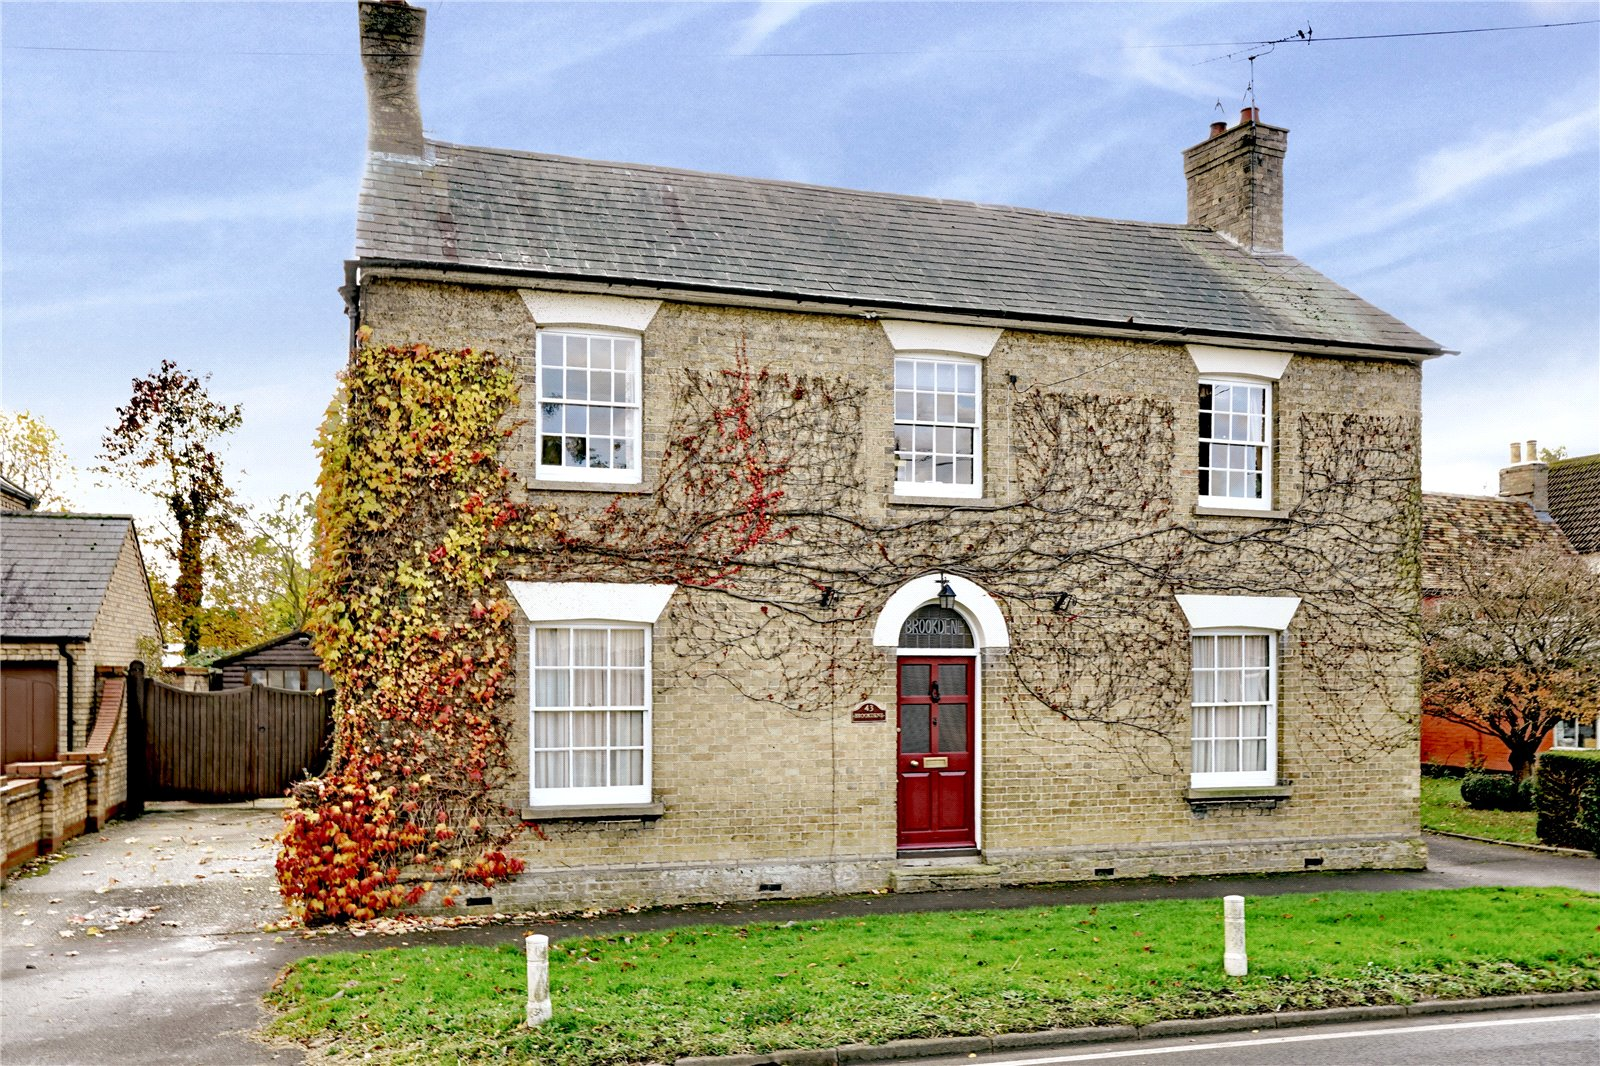 4 bed house for sale in Great Staughton  - Property Image 3